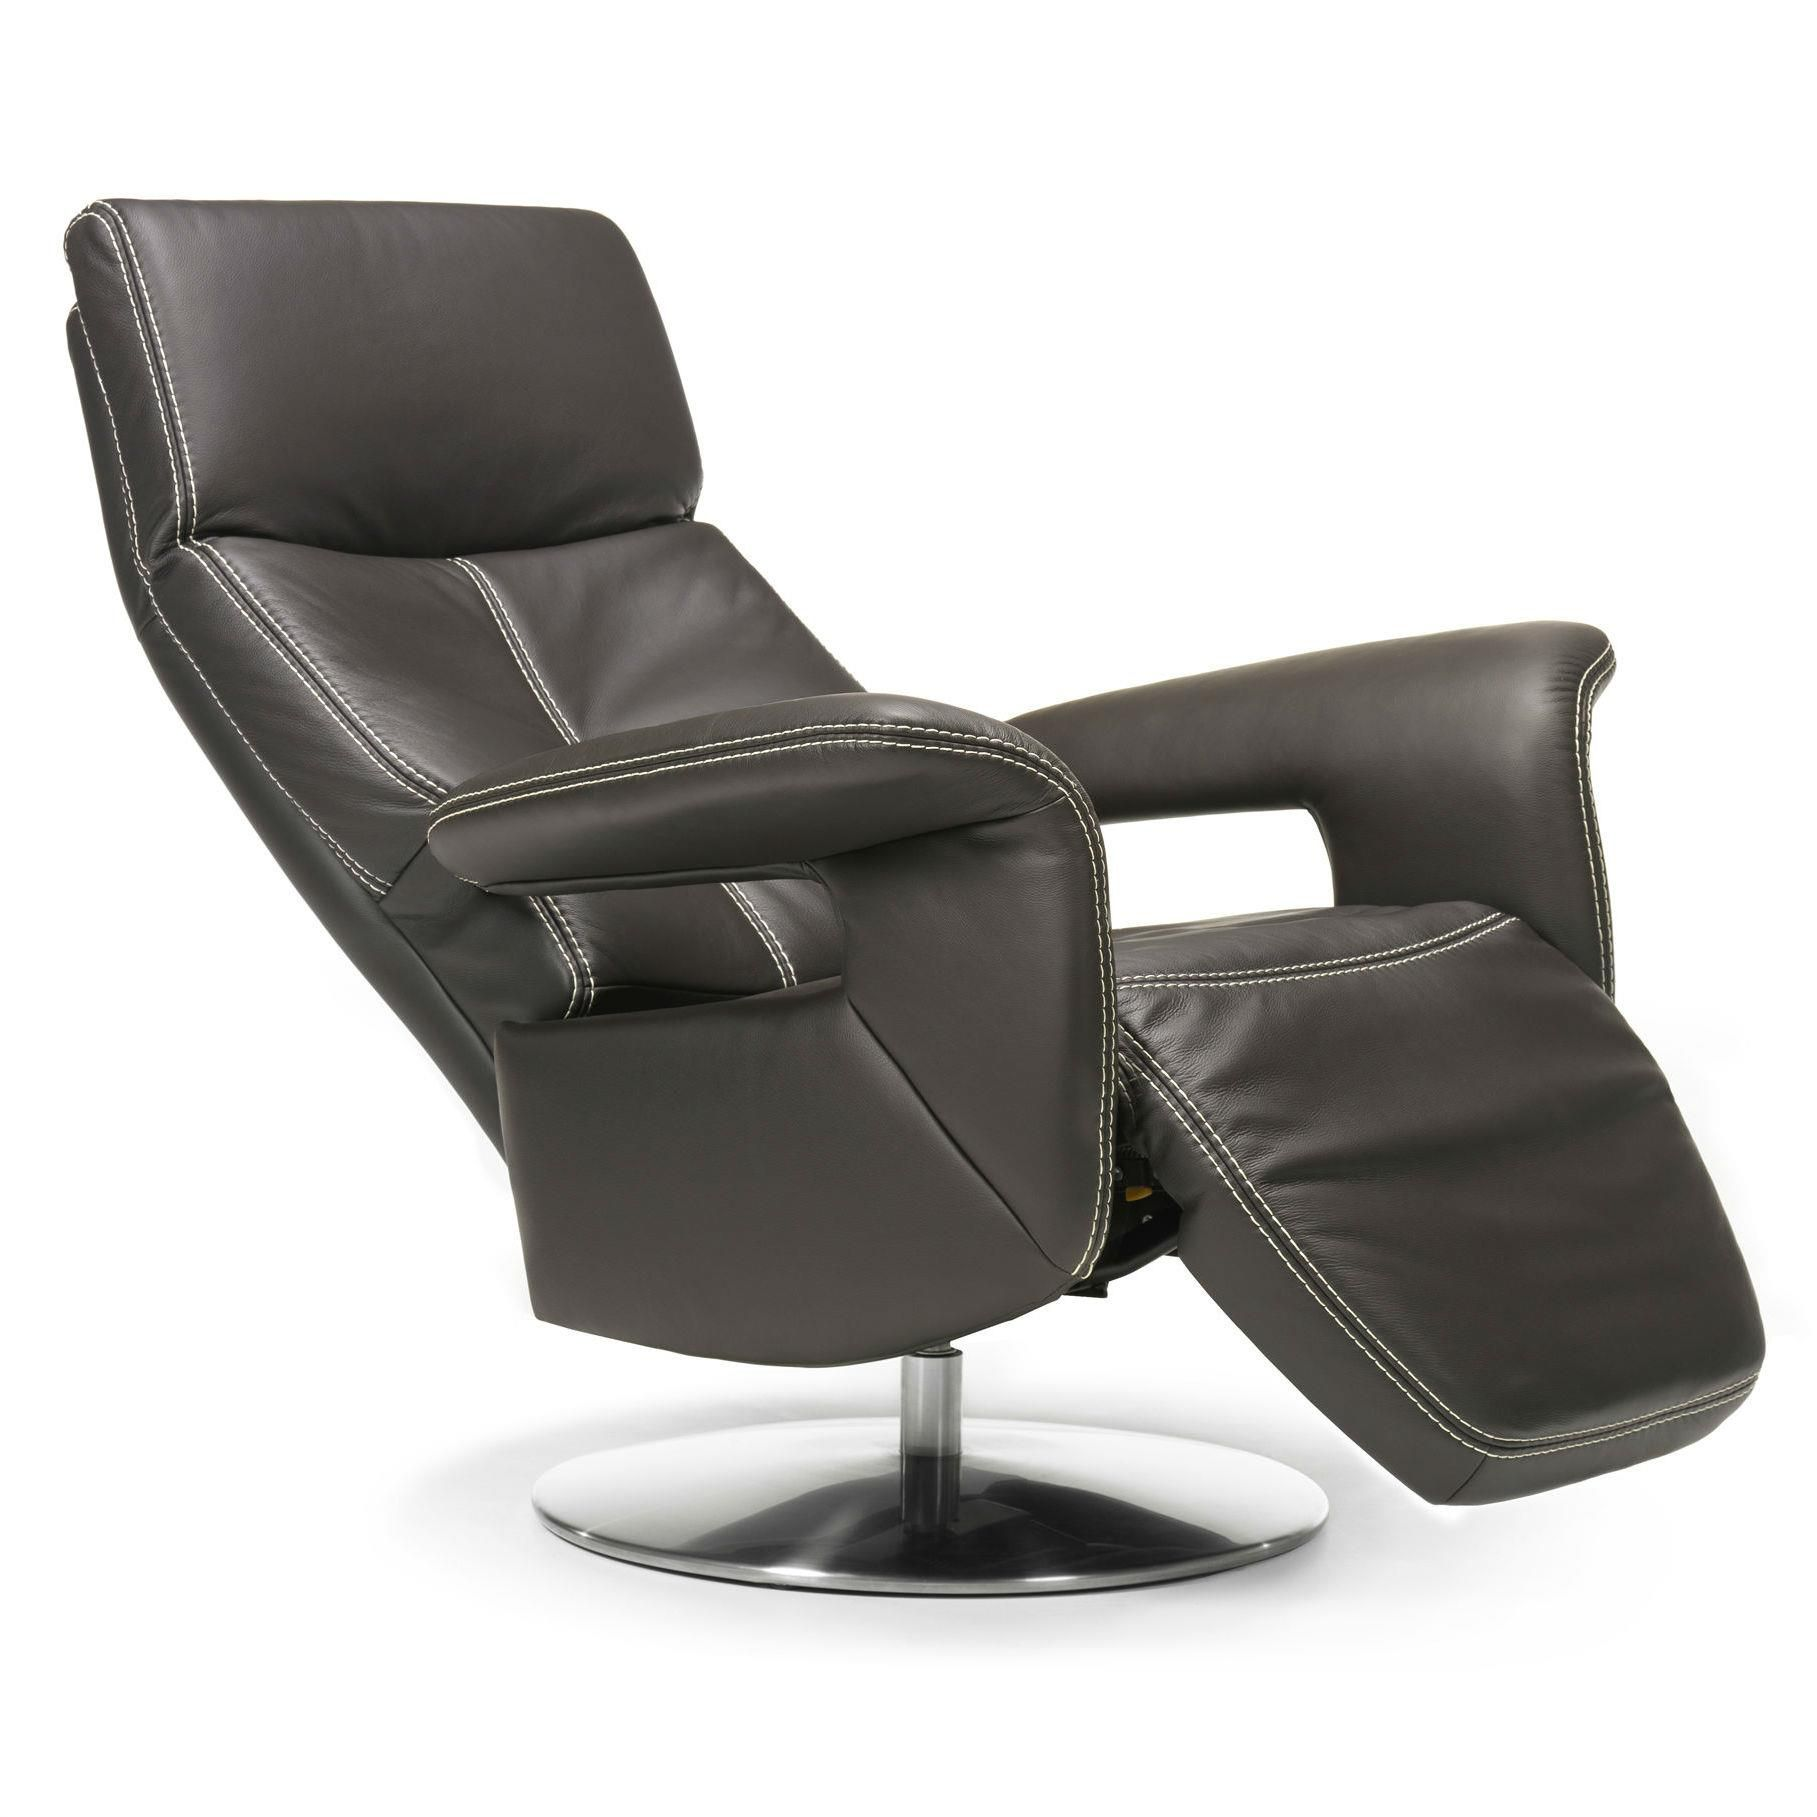 Choosing a Modern Recliner Chair